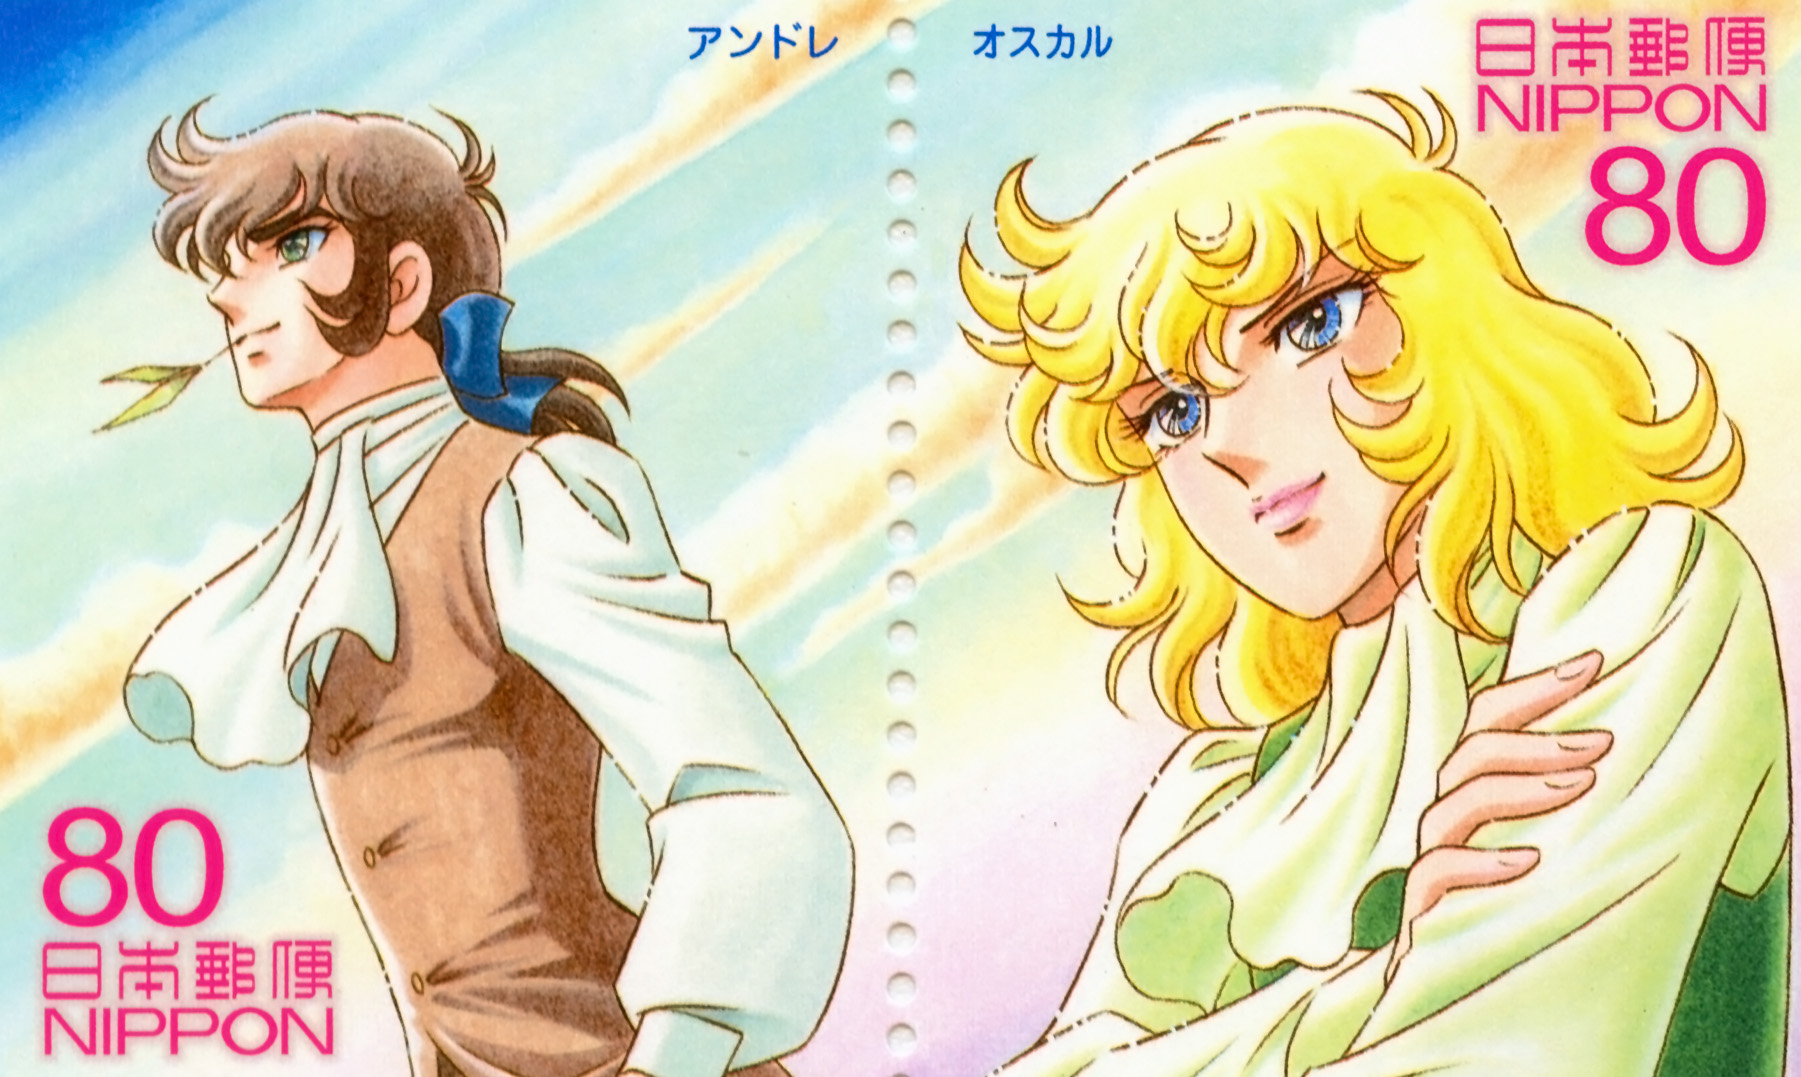 2011 Japanese Postal Service commemorative stamps, featuring characters from the anime adaptation of Riyoko Ikeda's manga The Rose of Versailles (1972-1973).